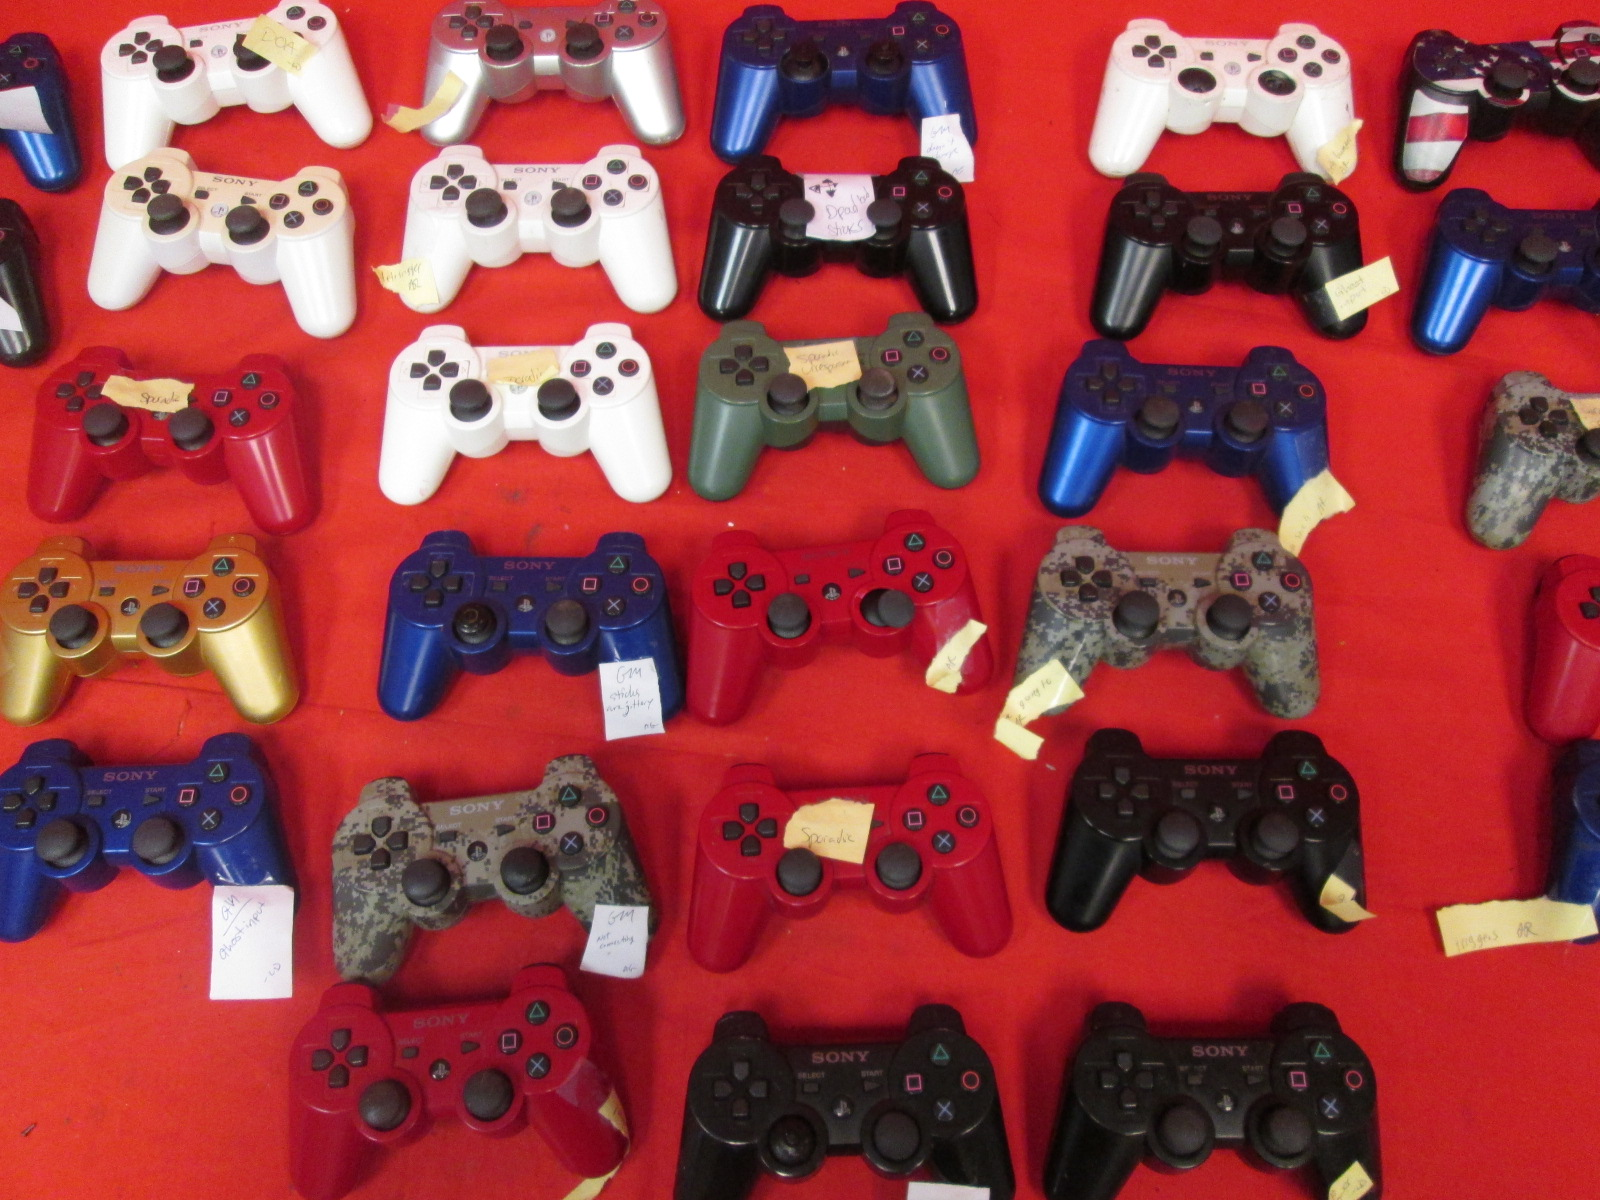 Lot Of 10 Dualshock 3 Wireless Controllers For PlayStation 3 Remote